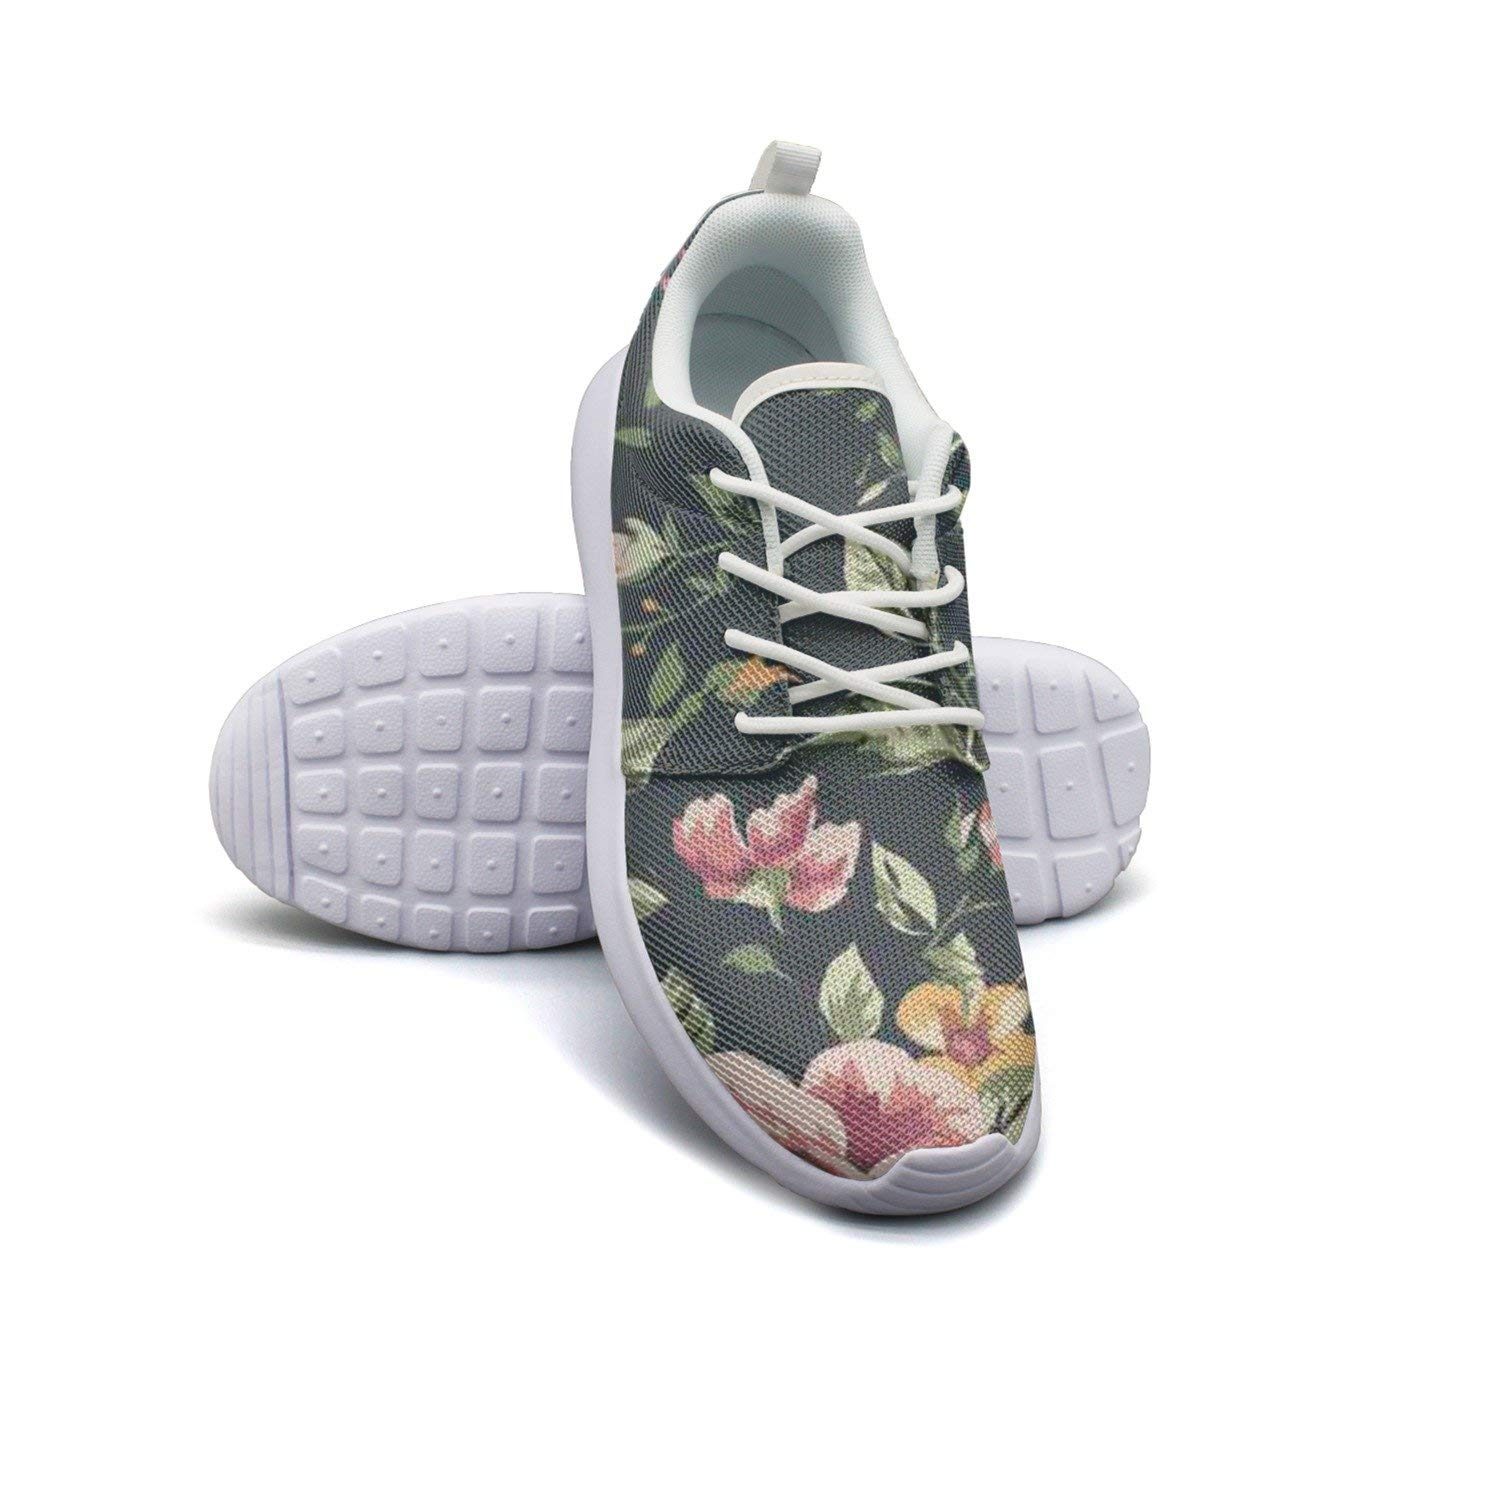 huge discount 8e0c0 bfd62 Get Quotations · HJXJESSIE Woman Retro Dark Floral Wallpaper Running Shoes  Jogging Runner Sports Sneakers